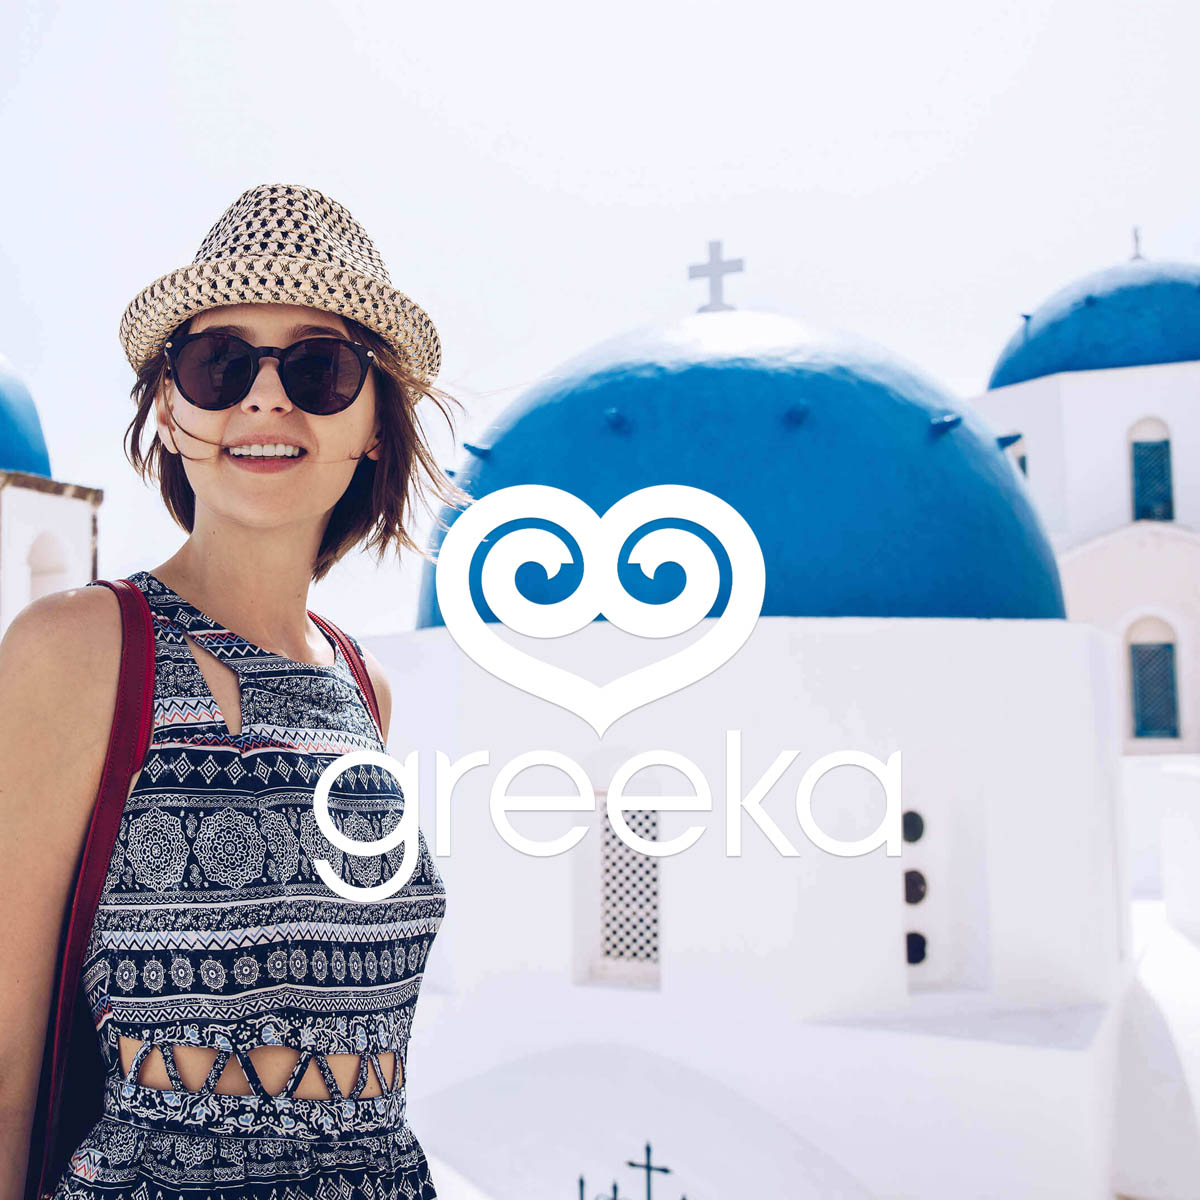 Greeka travel blog